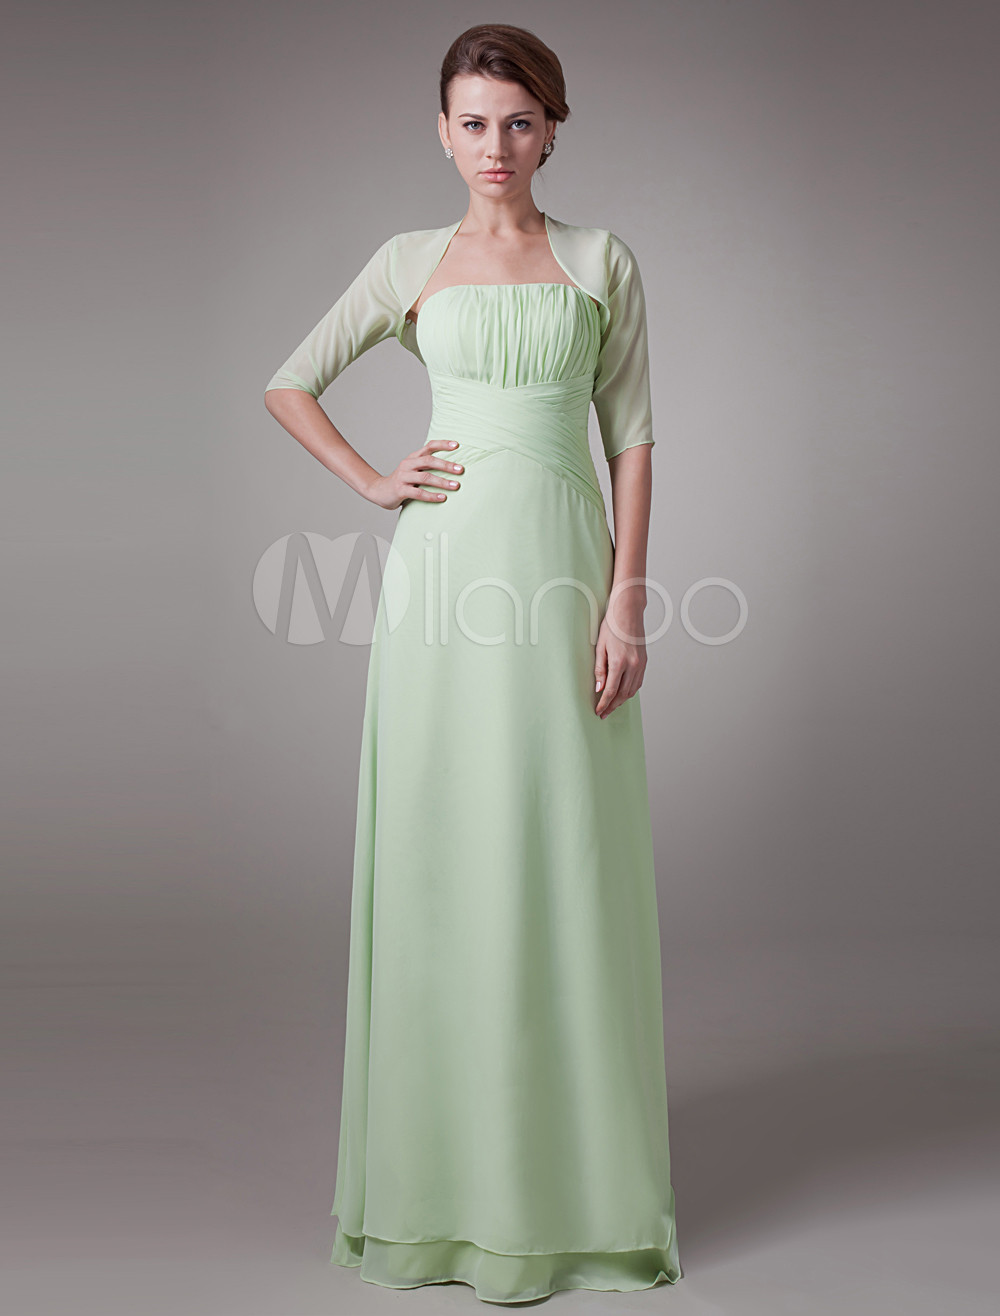 Sage 2-Piece Pleated Chiffon Mother Of The Bride Dress $129.99 AT vintagedancer.com